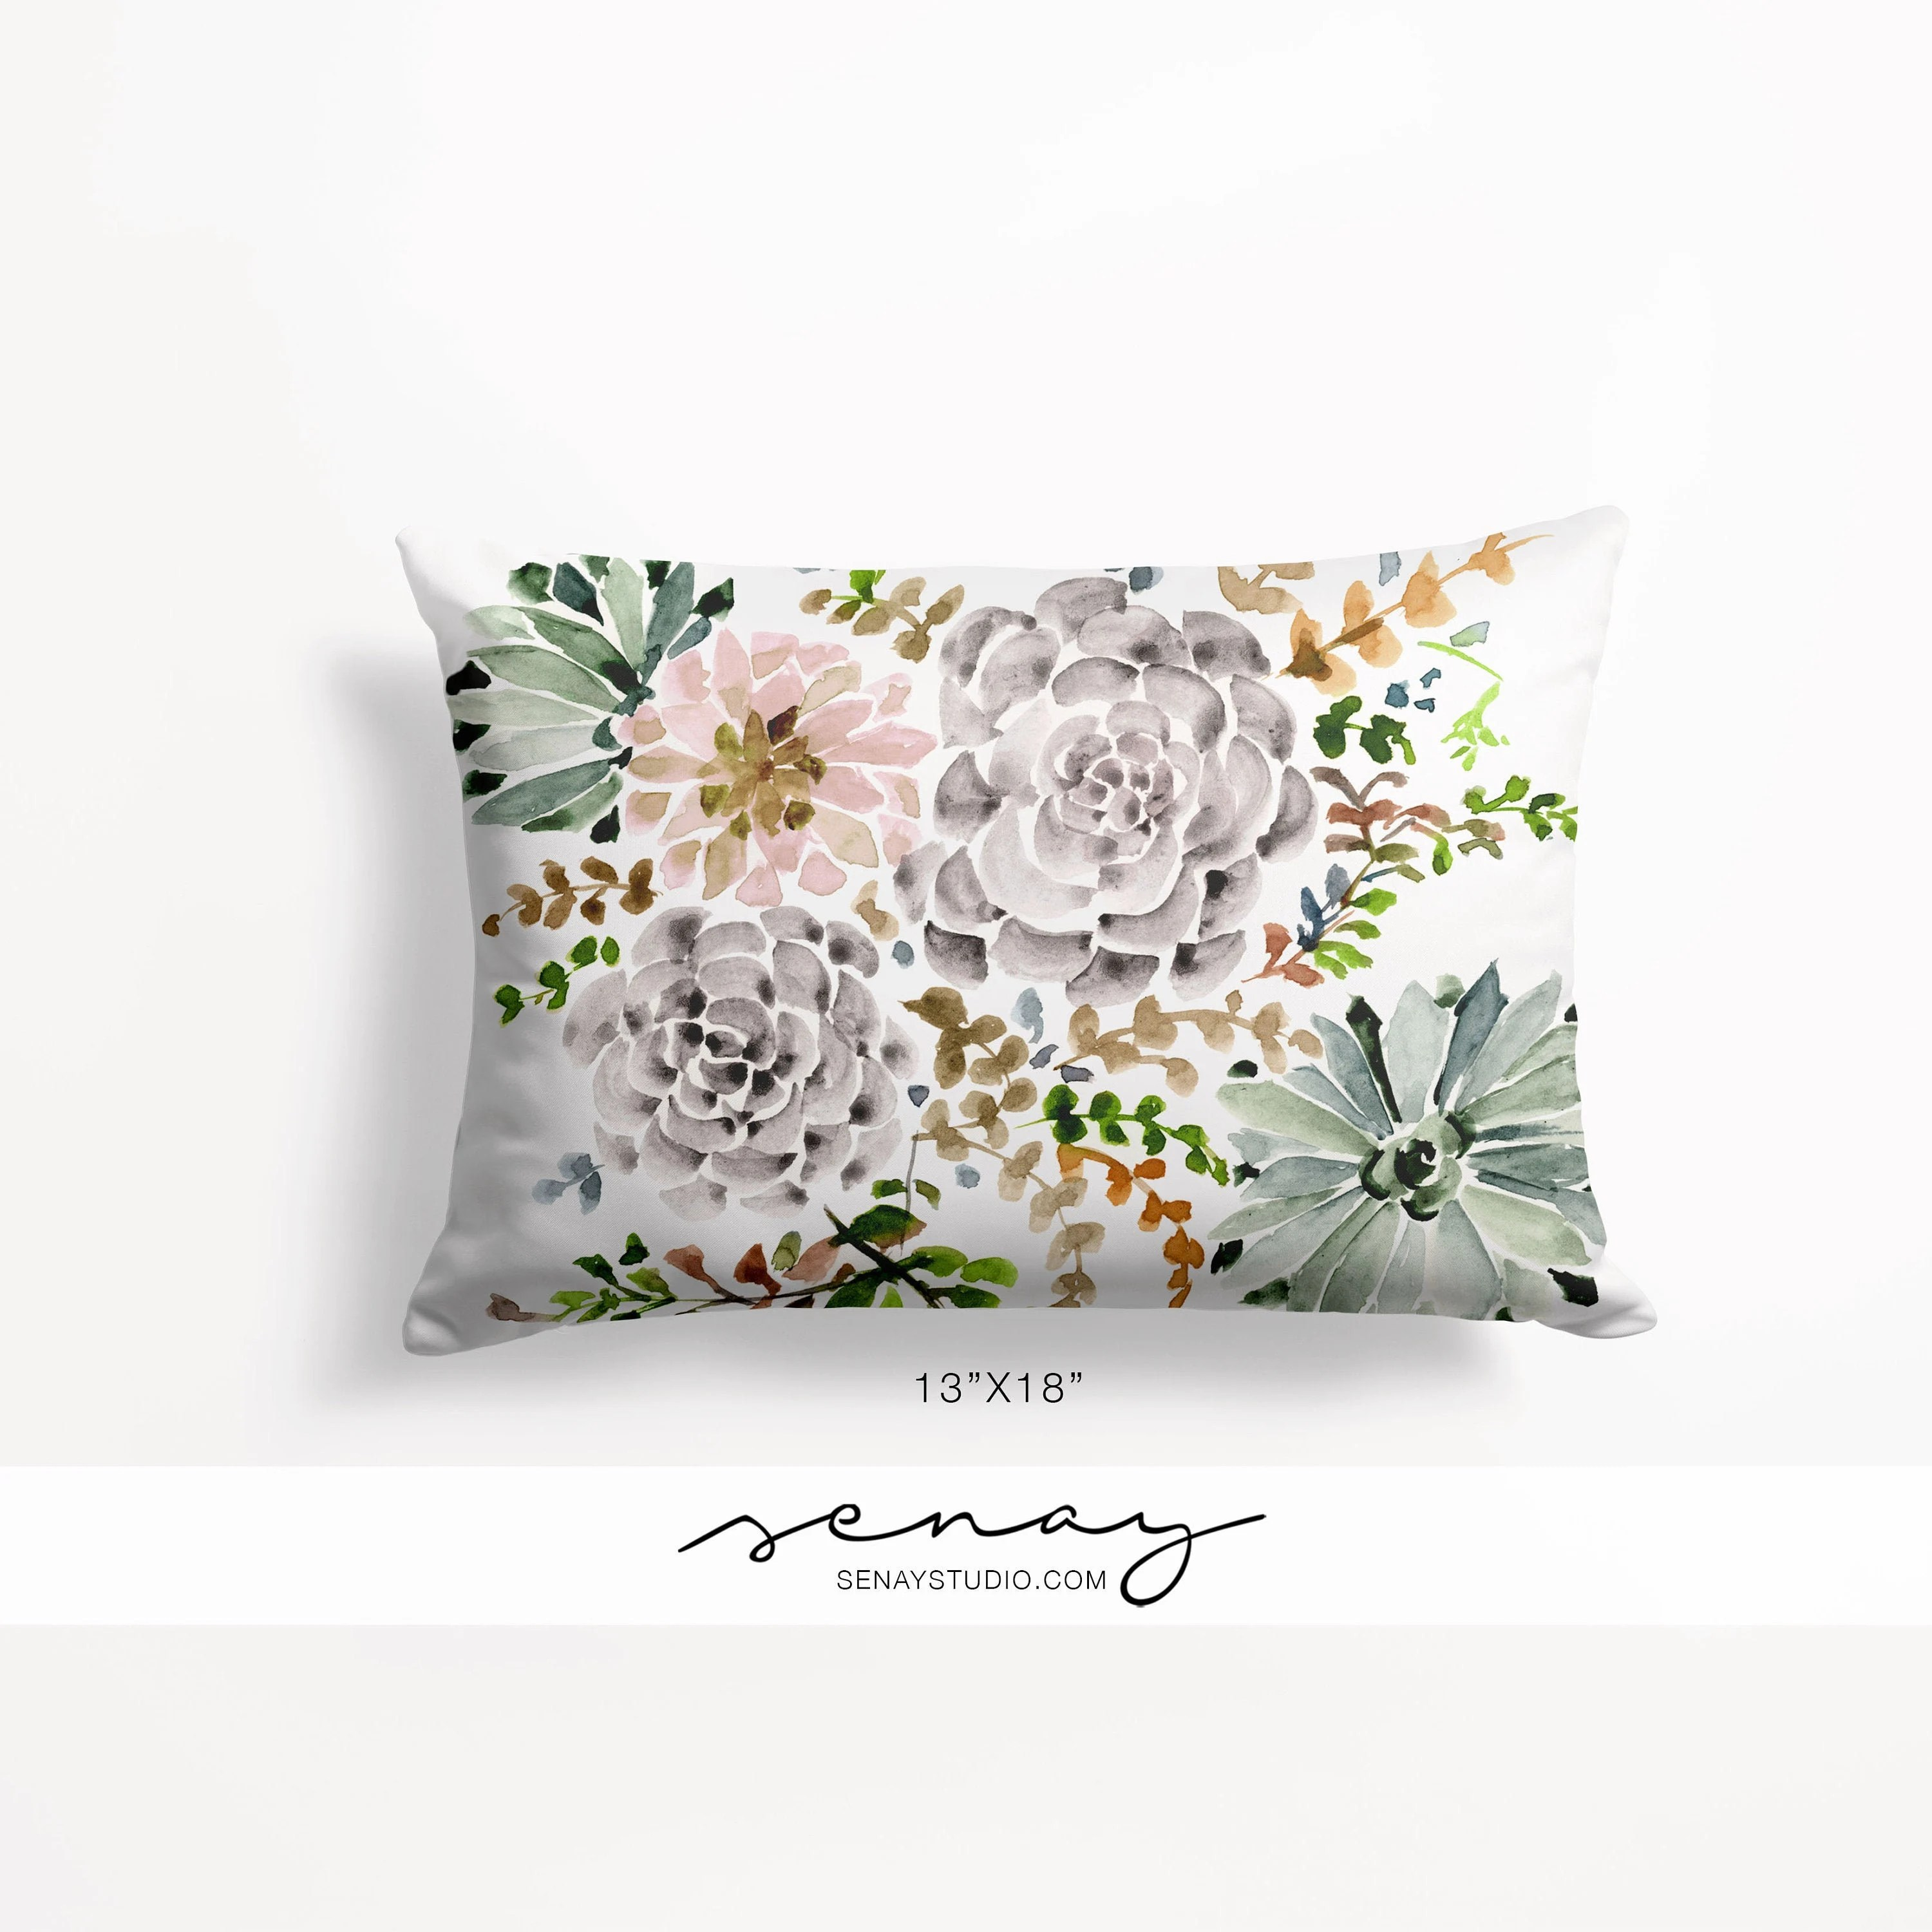 13x18 pillow cover etsy